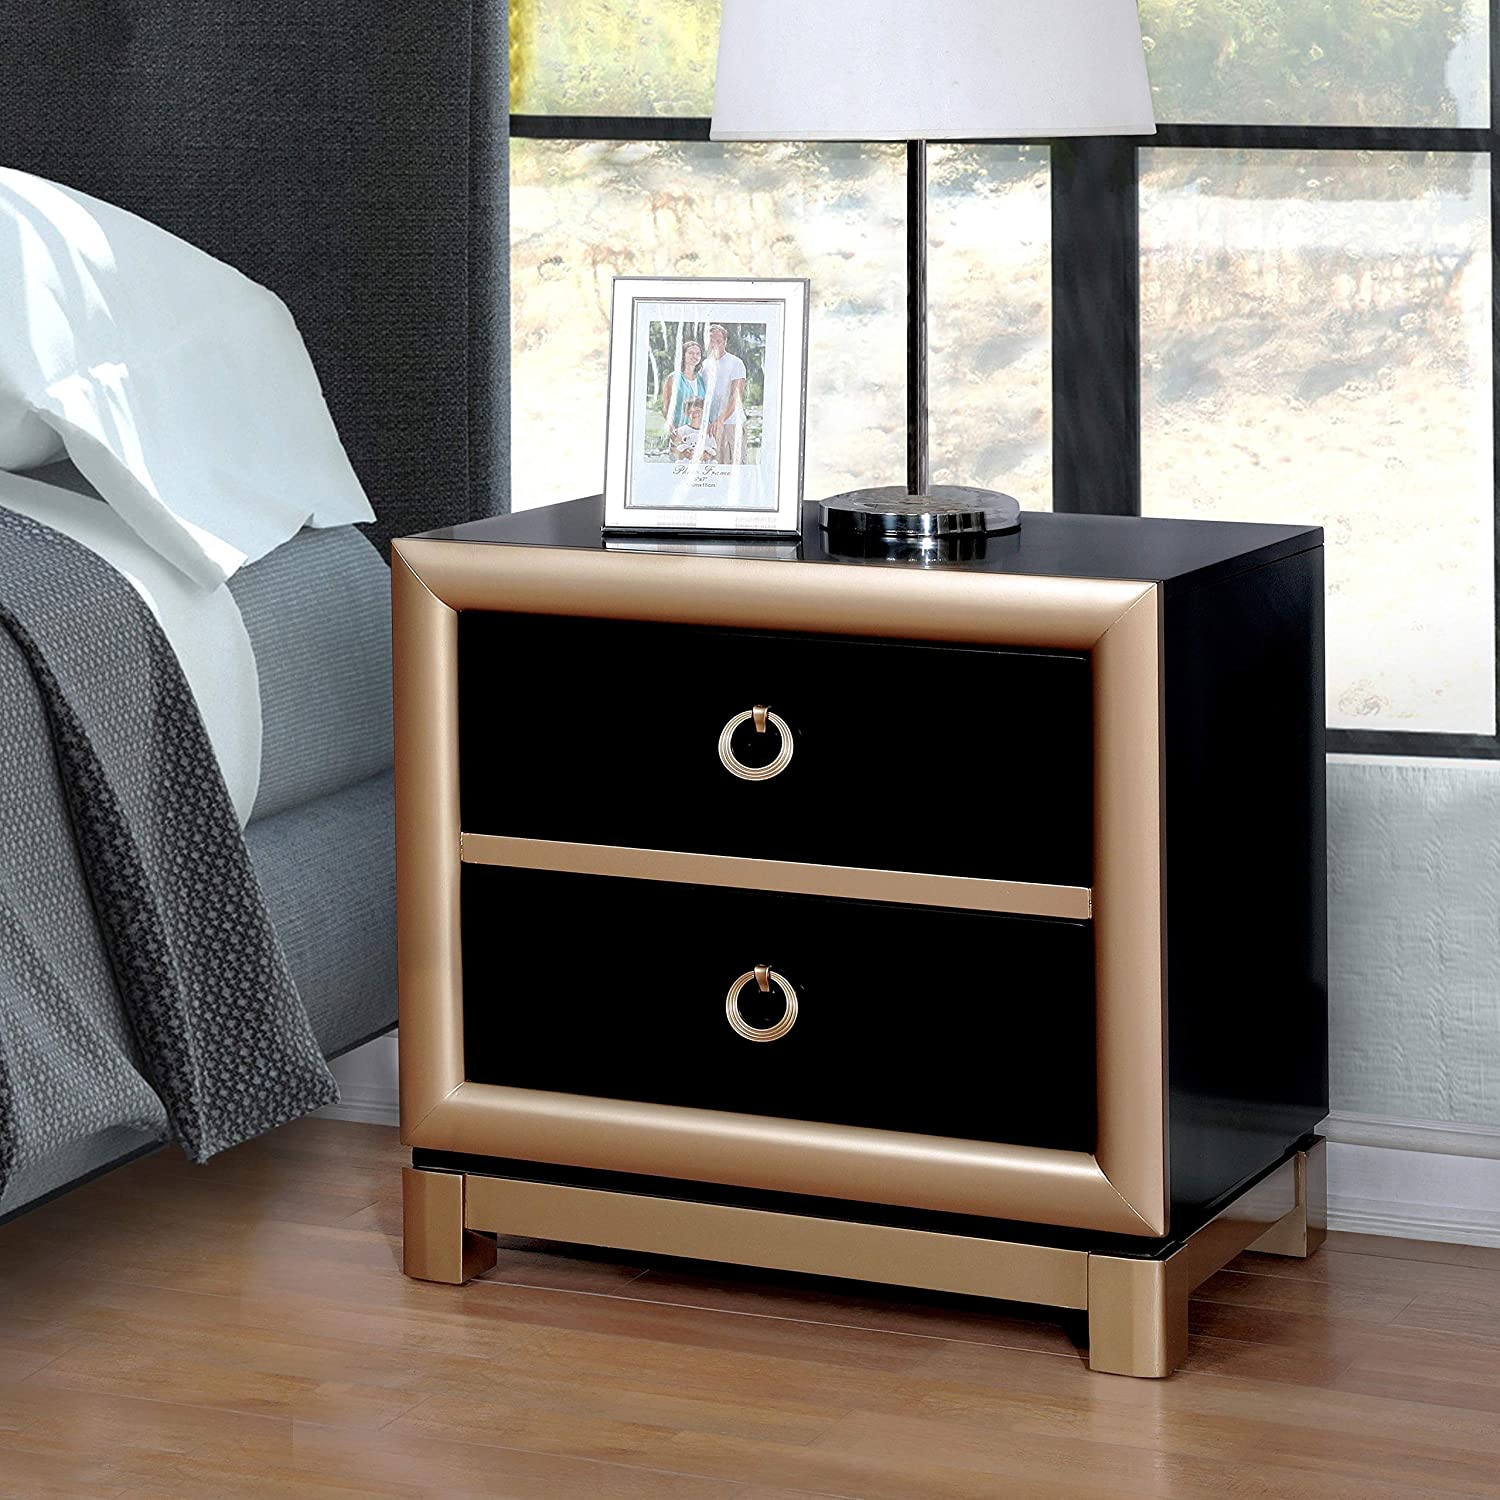 Amazon com furniture of america lopex contemporary two tone black gold 3 drawer nightstand kitchen dining